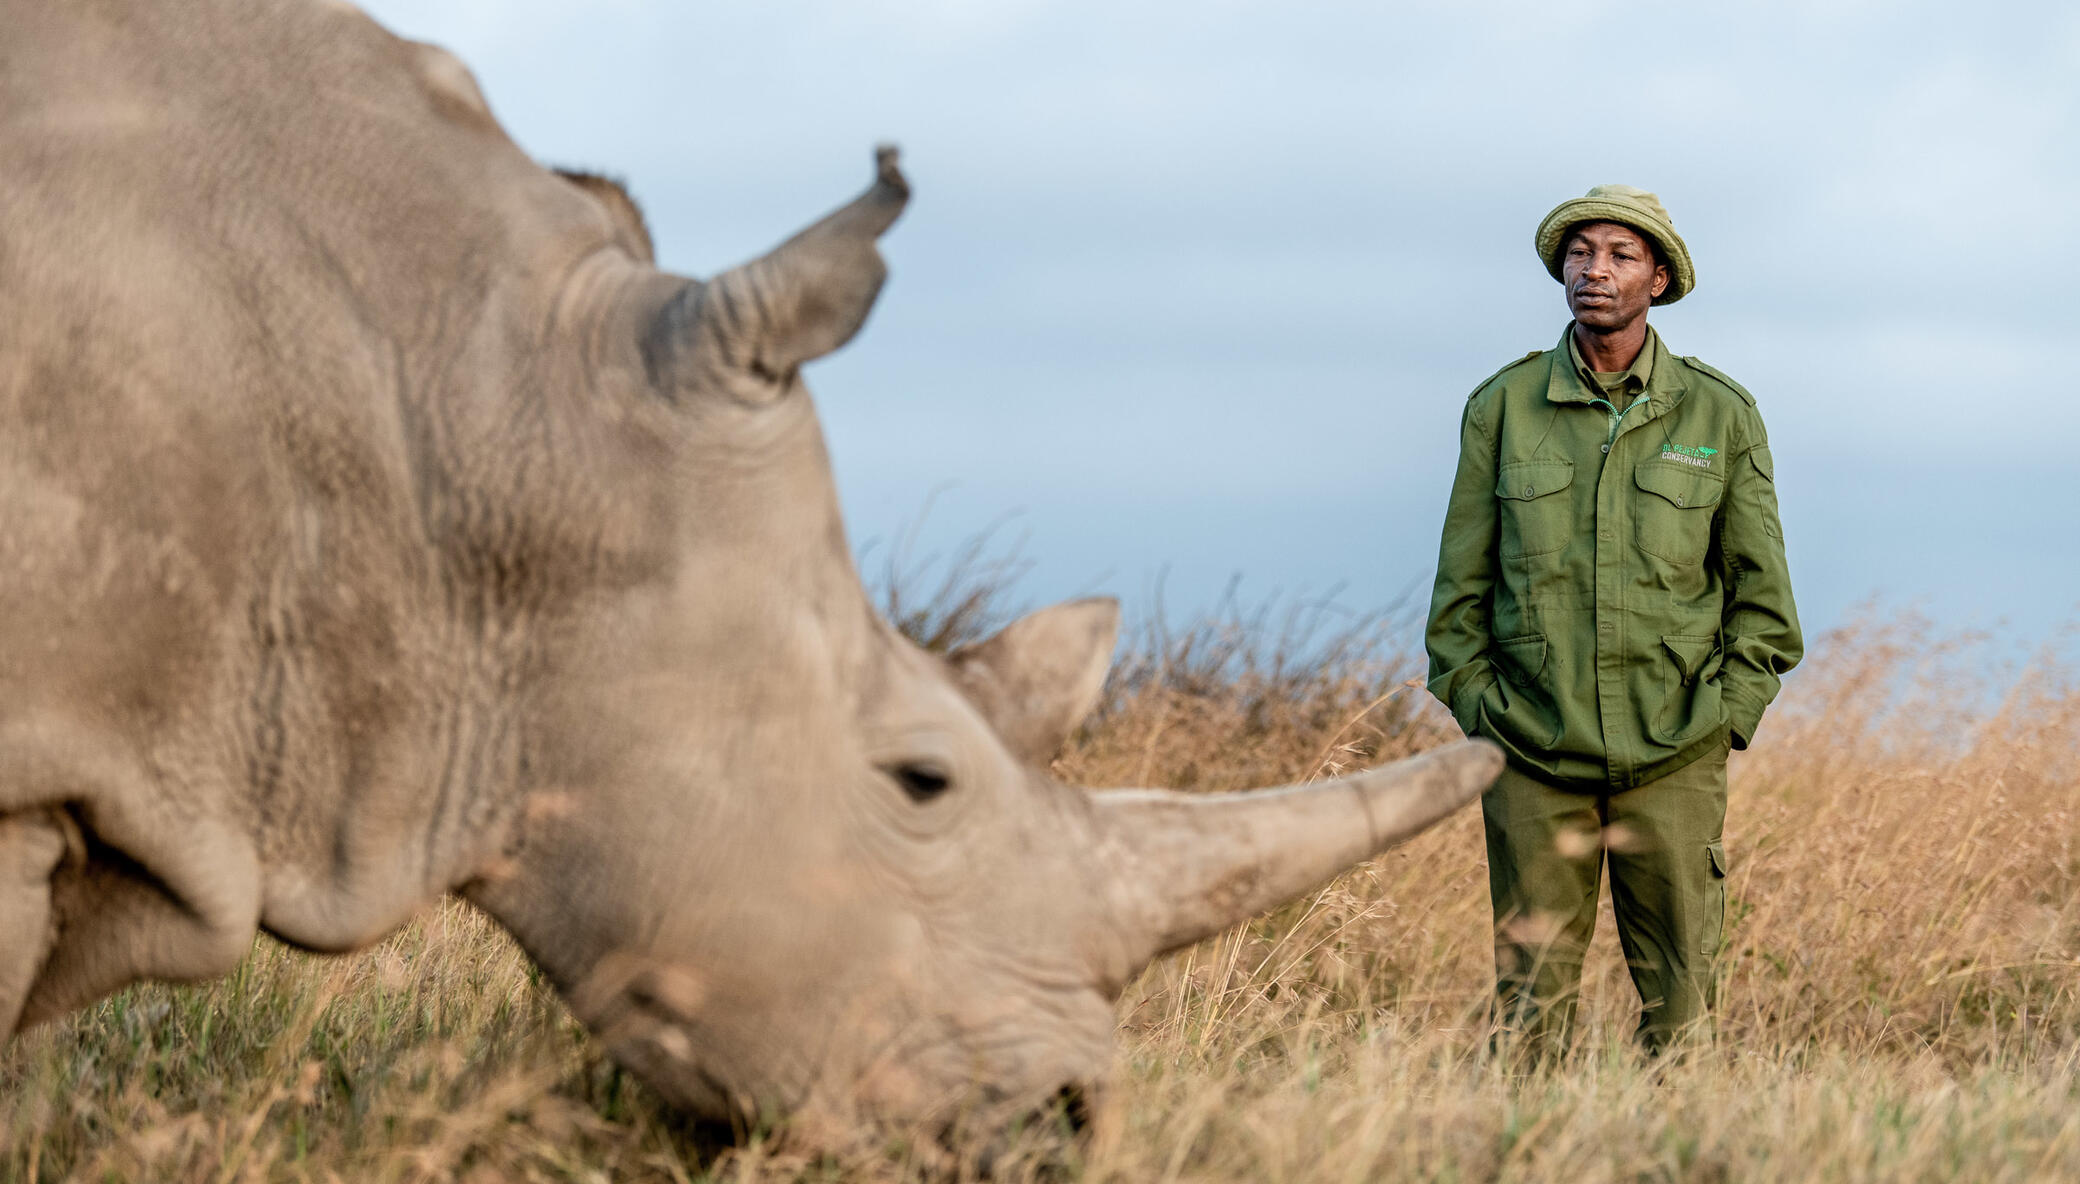 The Next Phase of our Northern White Rhino Program